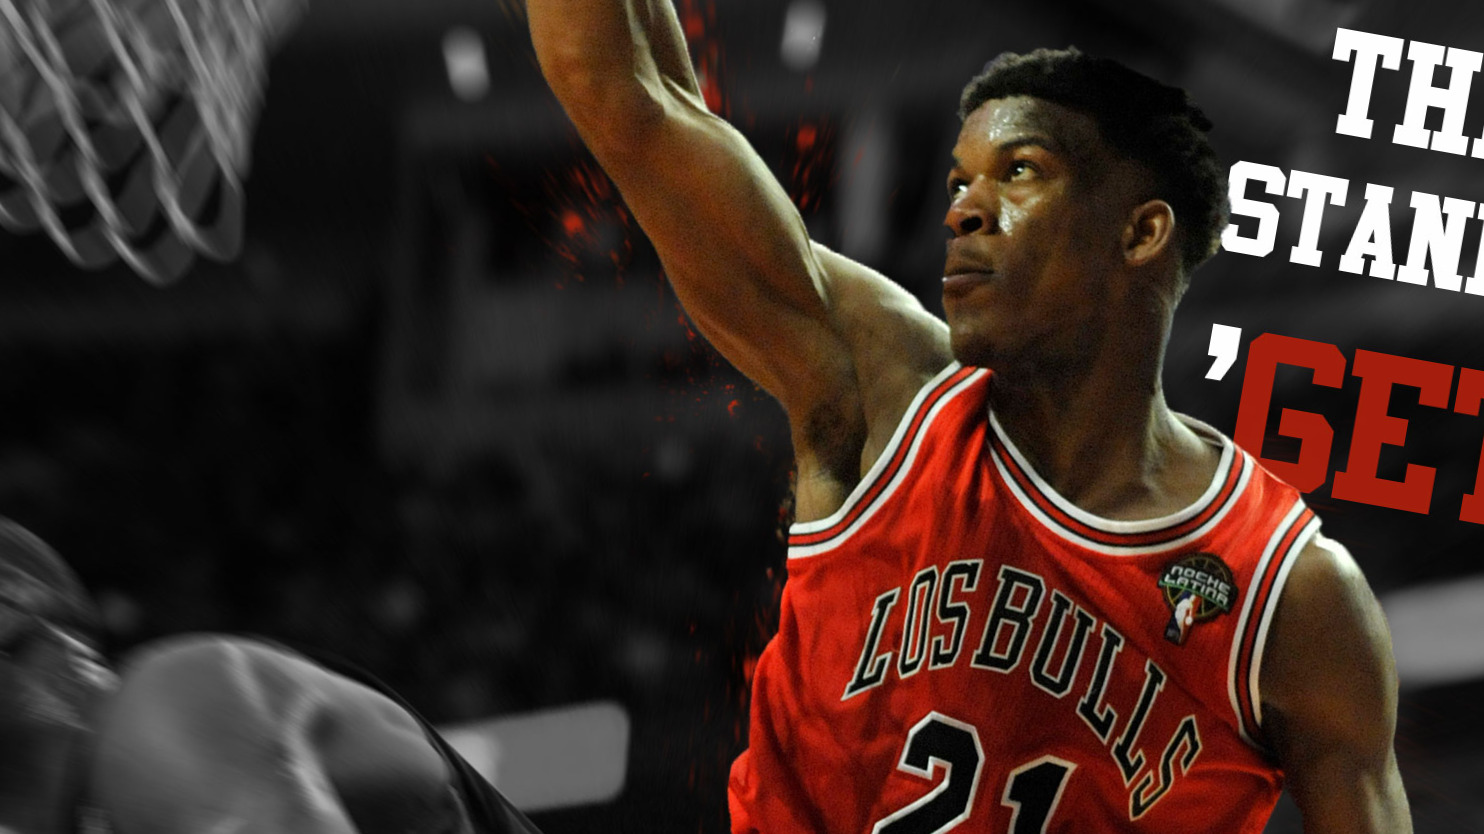 Jimmy Butler Bulls HD Background Wallpapers 1484x834